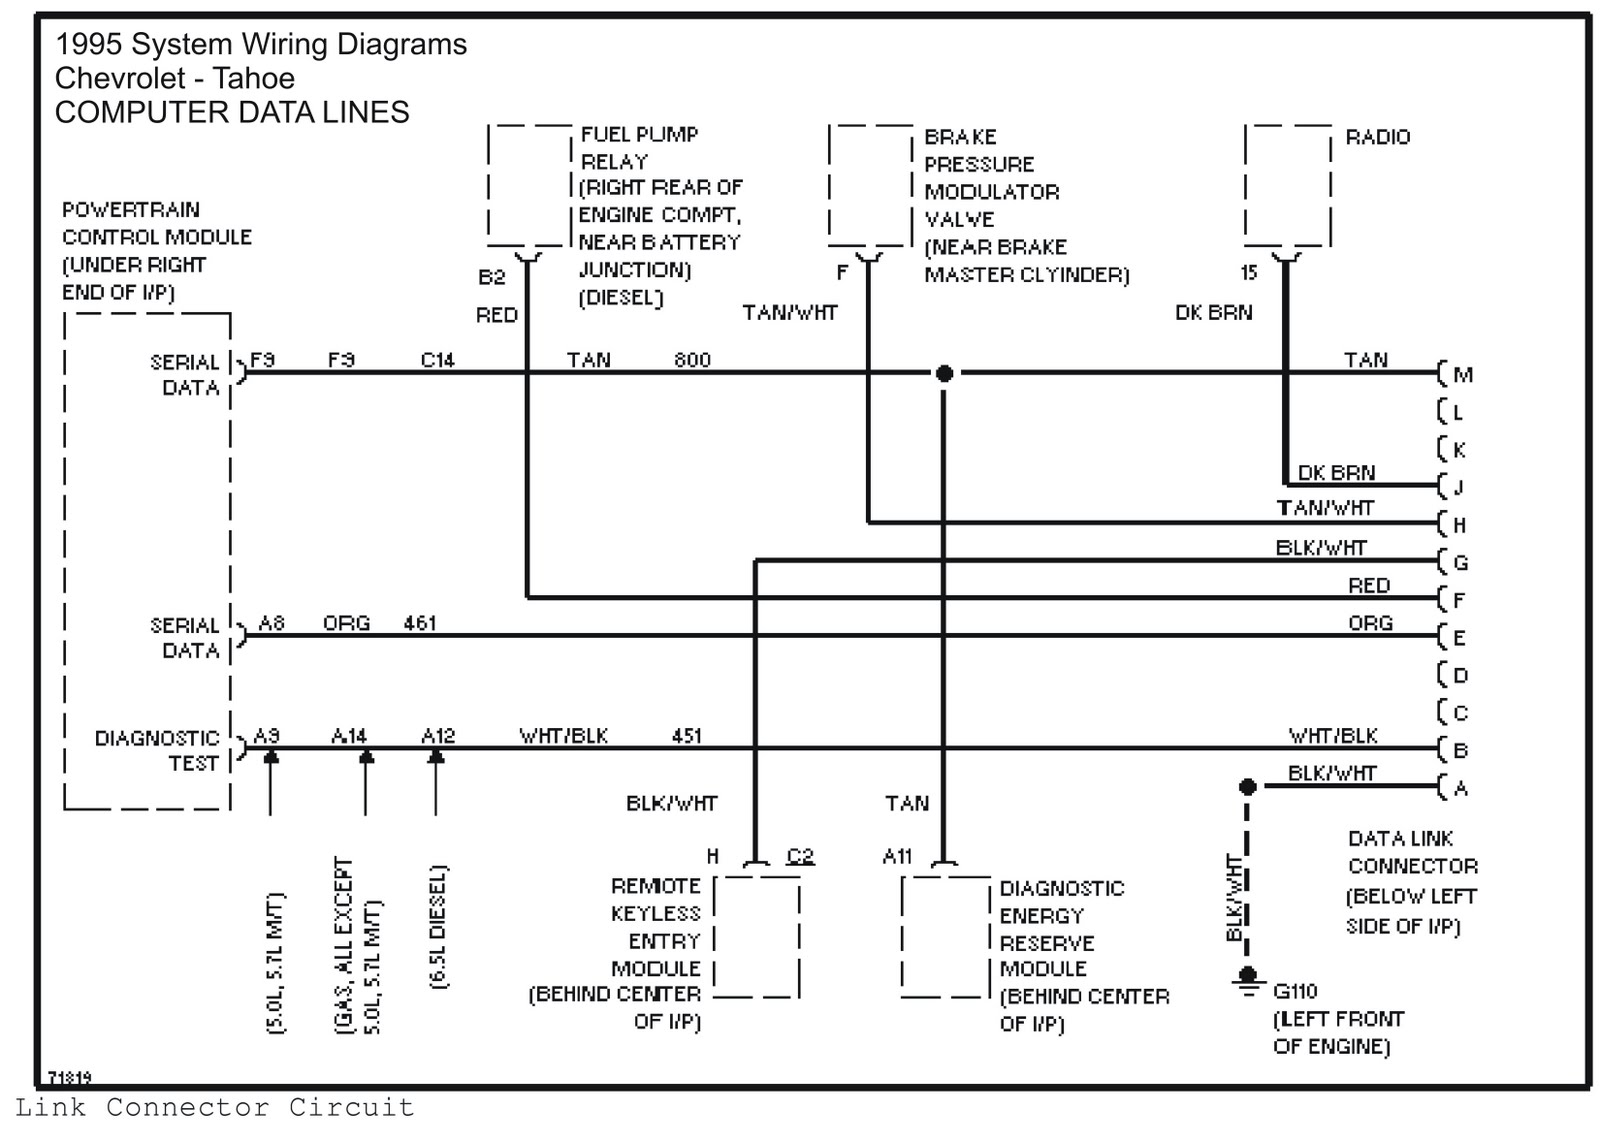 97 Chevy Tahoe Fuse Diagram 1997 Stereo Wiring Free Diagrams Express Radio Get Image About